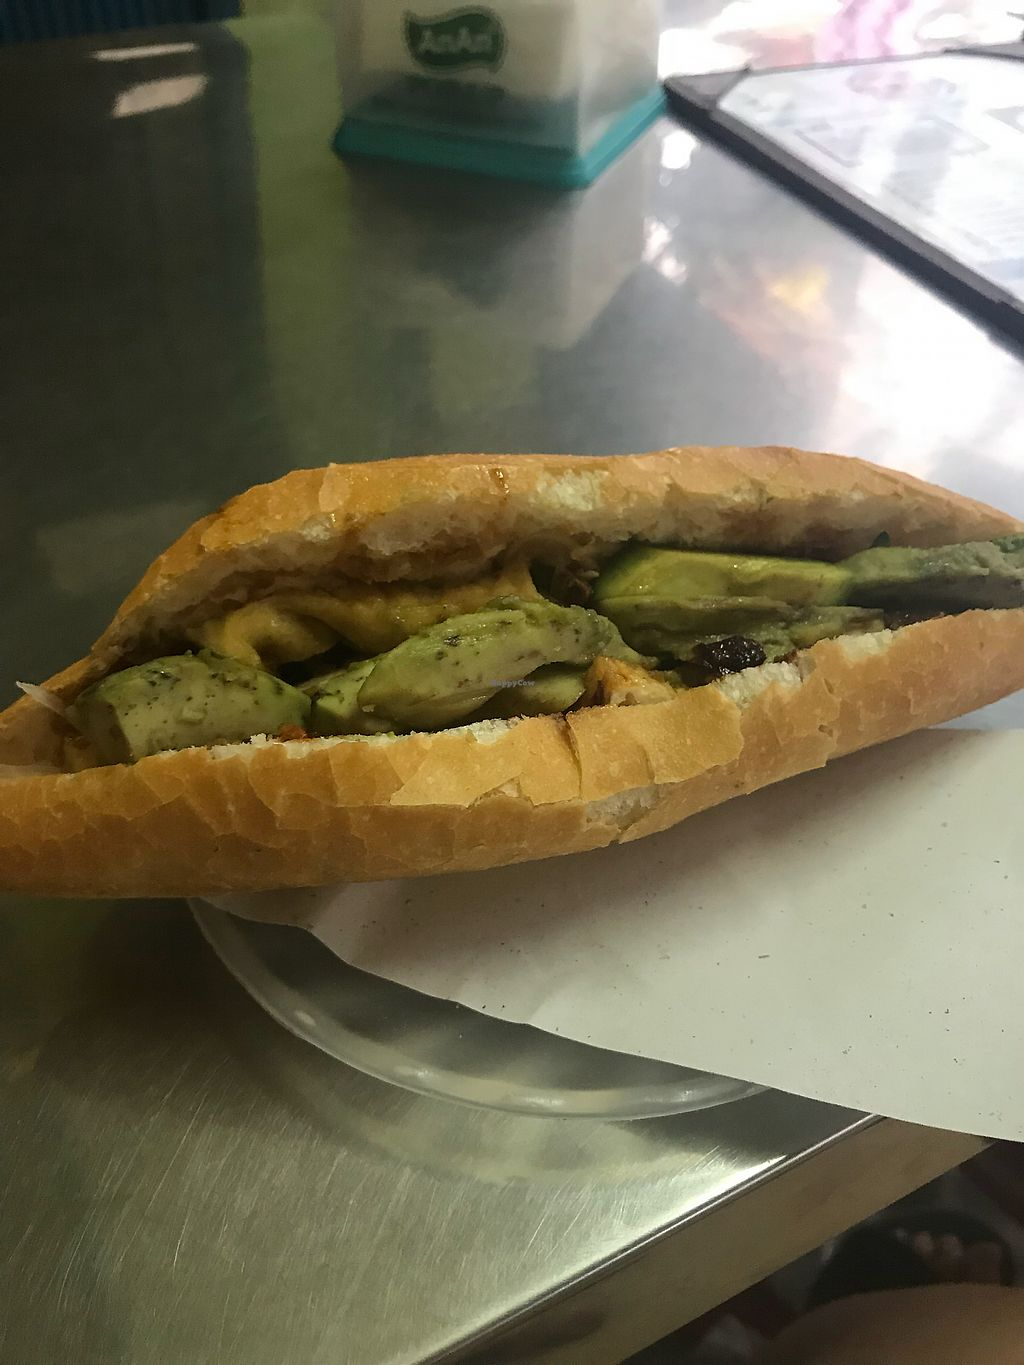 """Photo of Phi Banh Mi  by <a href=""""/members/profile/AnnaLevshin"""">AnnaLevshin</a> <br/>Vego with no cheese and avo <br/> April 15, 2018  - <a href='/contact/abuse/image/98895/386170'>Report</a>"""